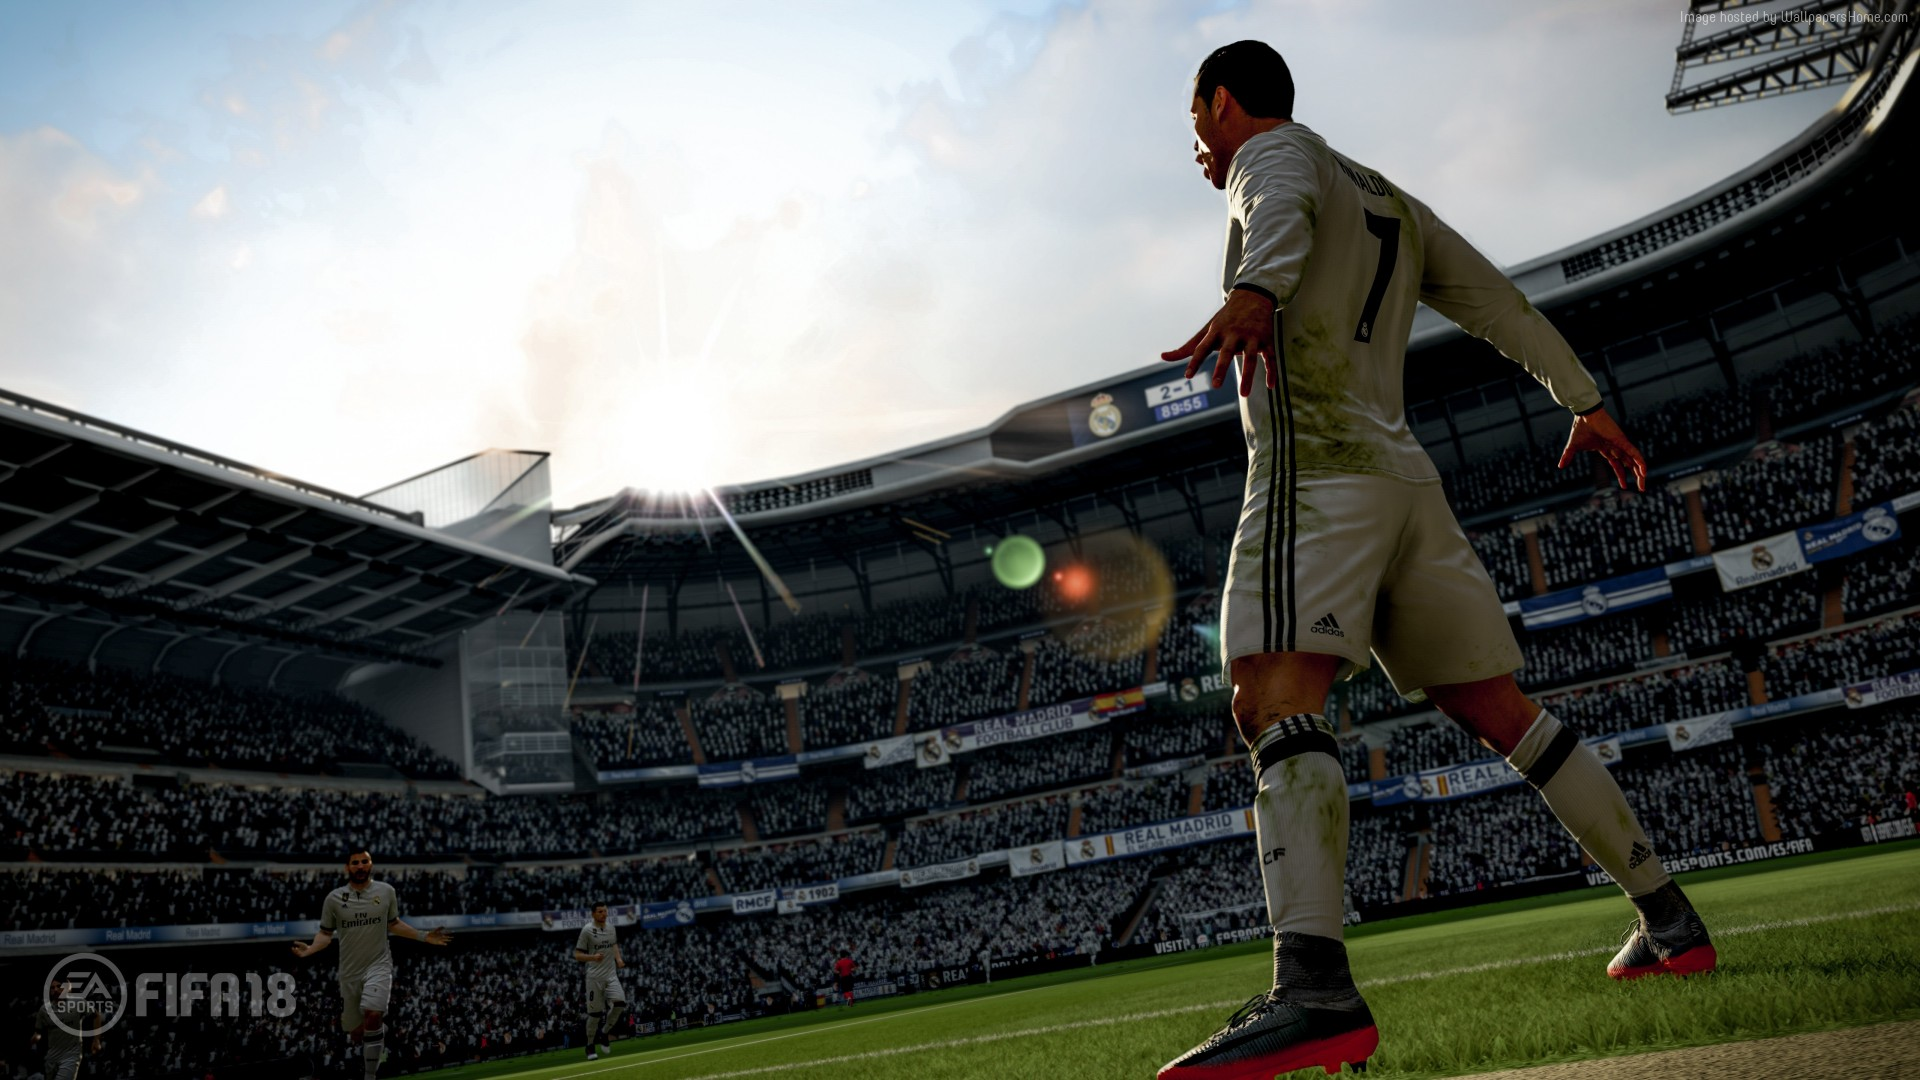 download fifa 18 hd wallpapers 1920x1080 | read games reviews, play